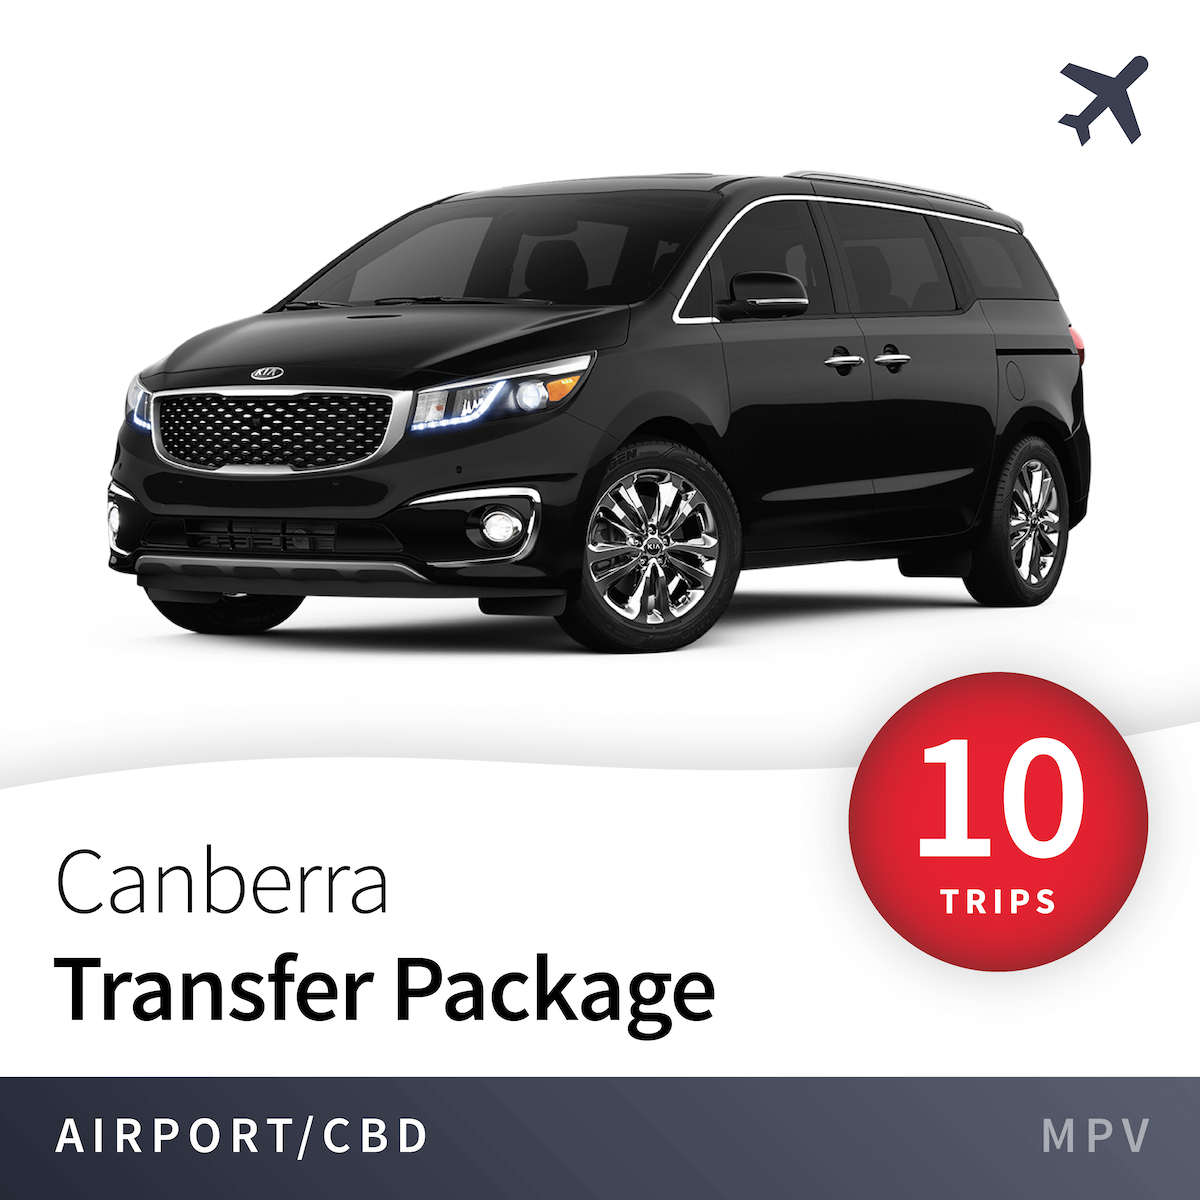 Canberra Airport Transfer Package - MPV (10 Trips) 4